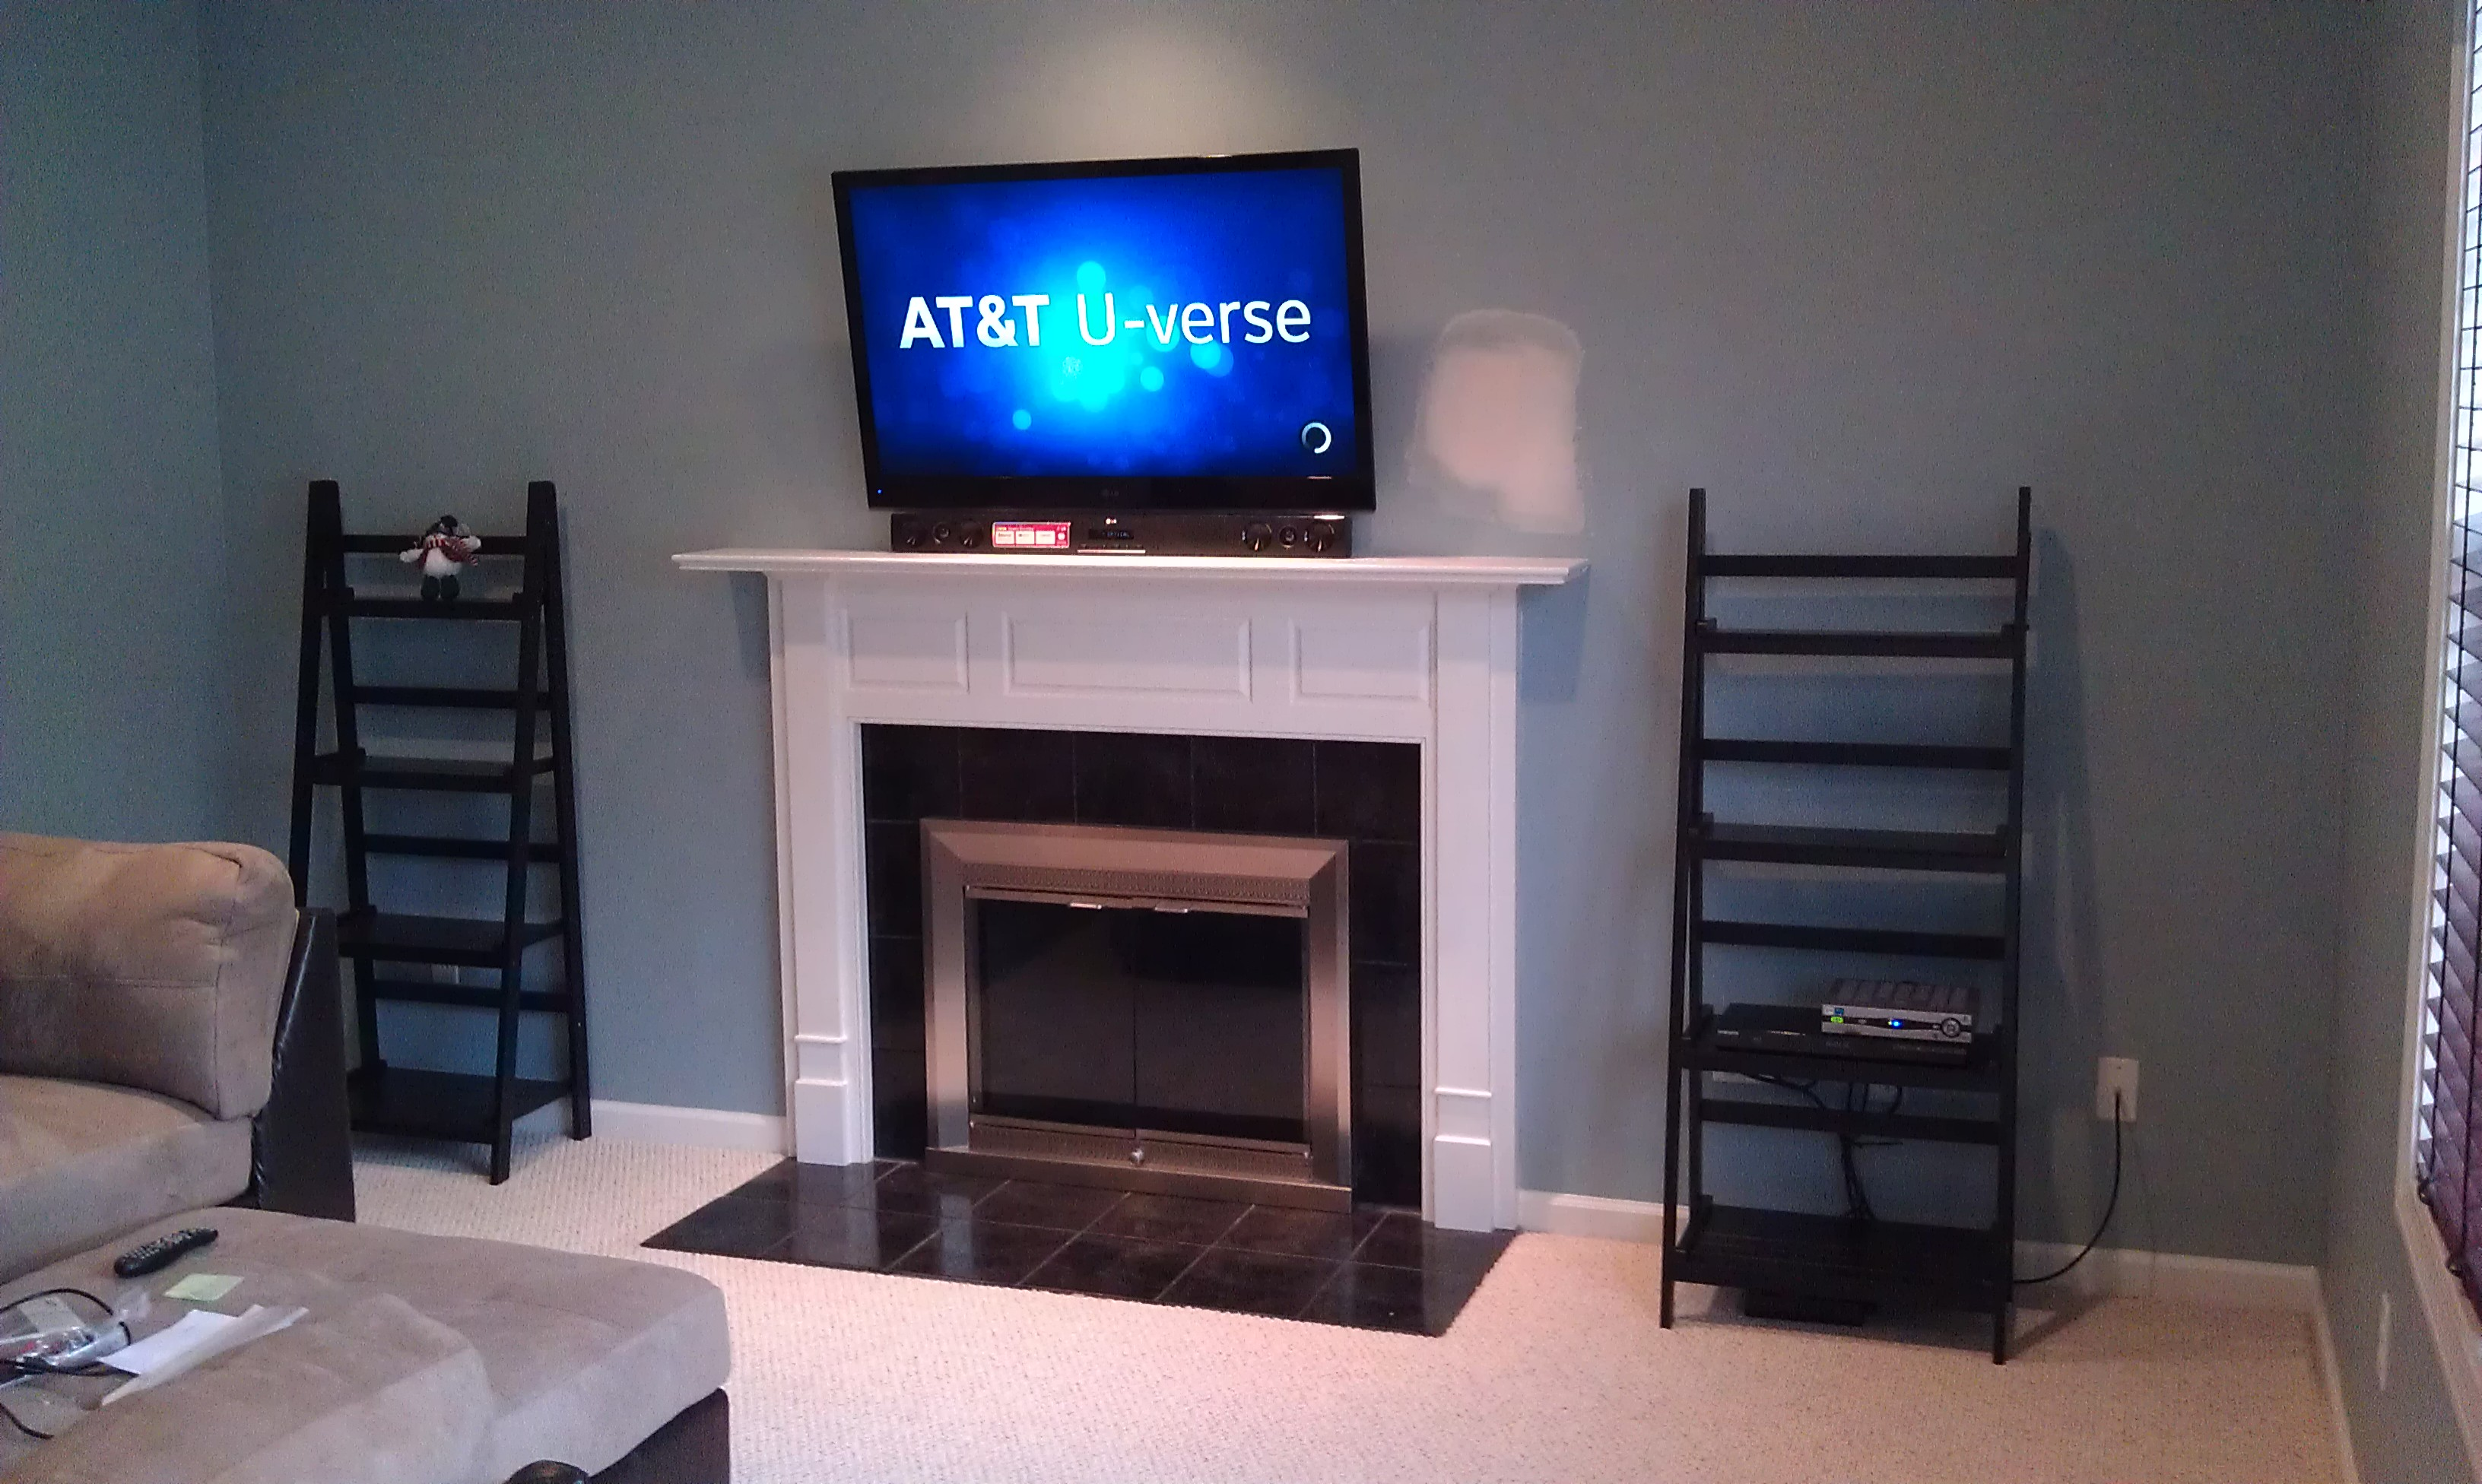 Middletown Ct Tv Mounting Home Theater Installation Wiring Panel Lg Over Fireplace With Soundbar And Wires Concealed 3